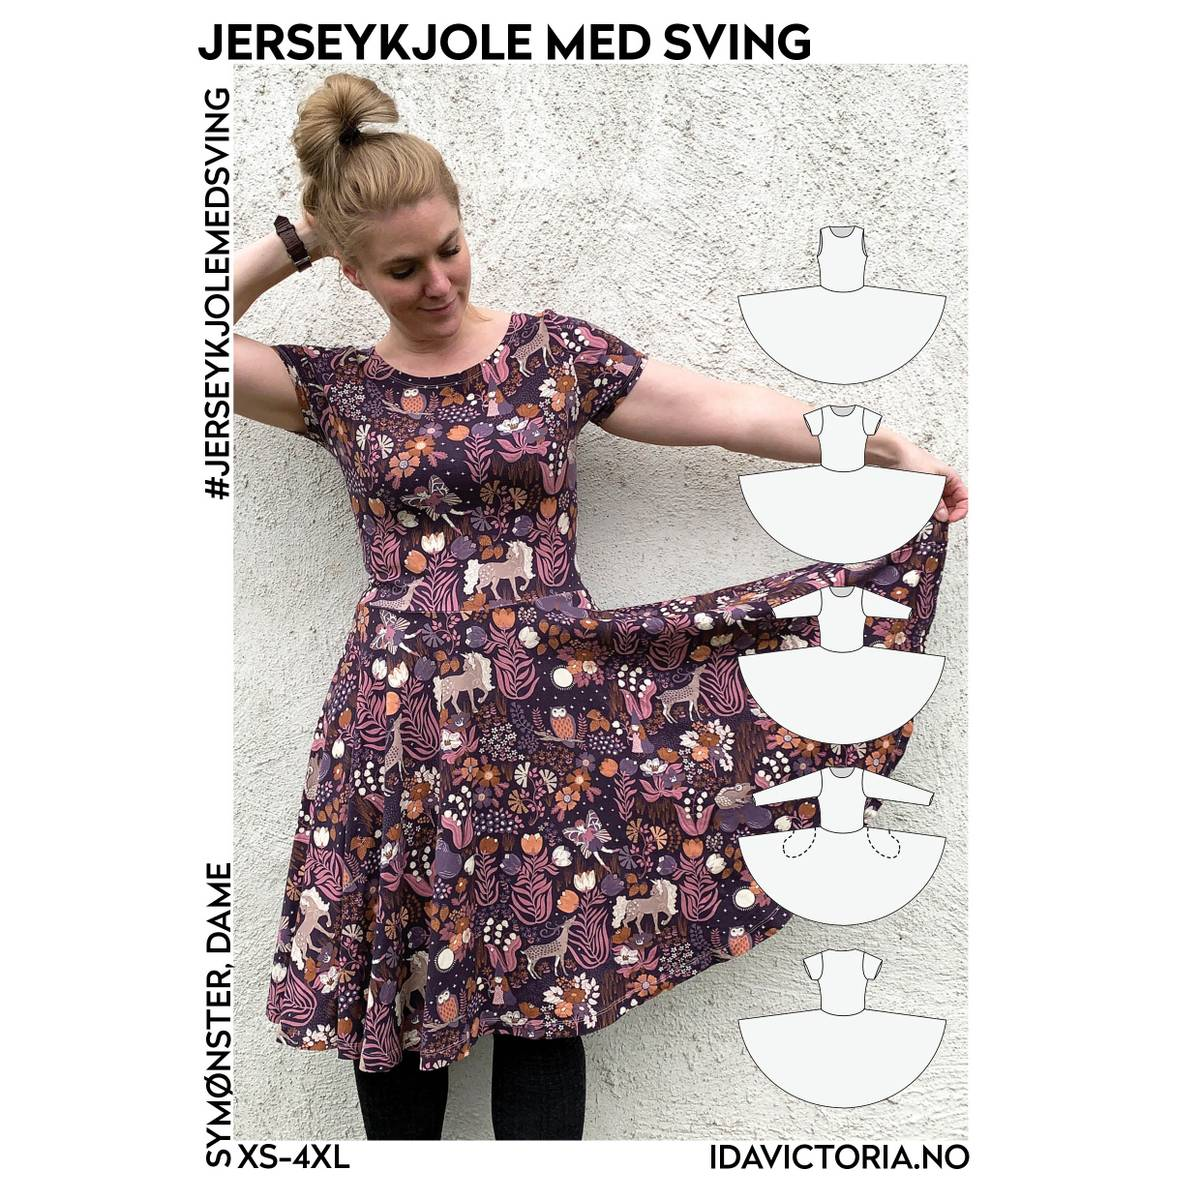 Jerseykjole med sving (XS-4XL)